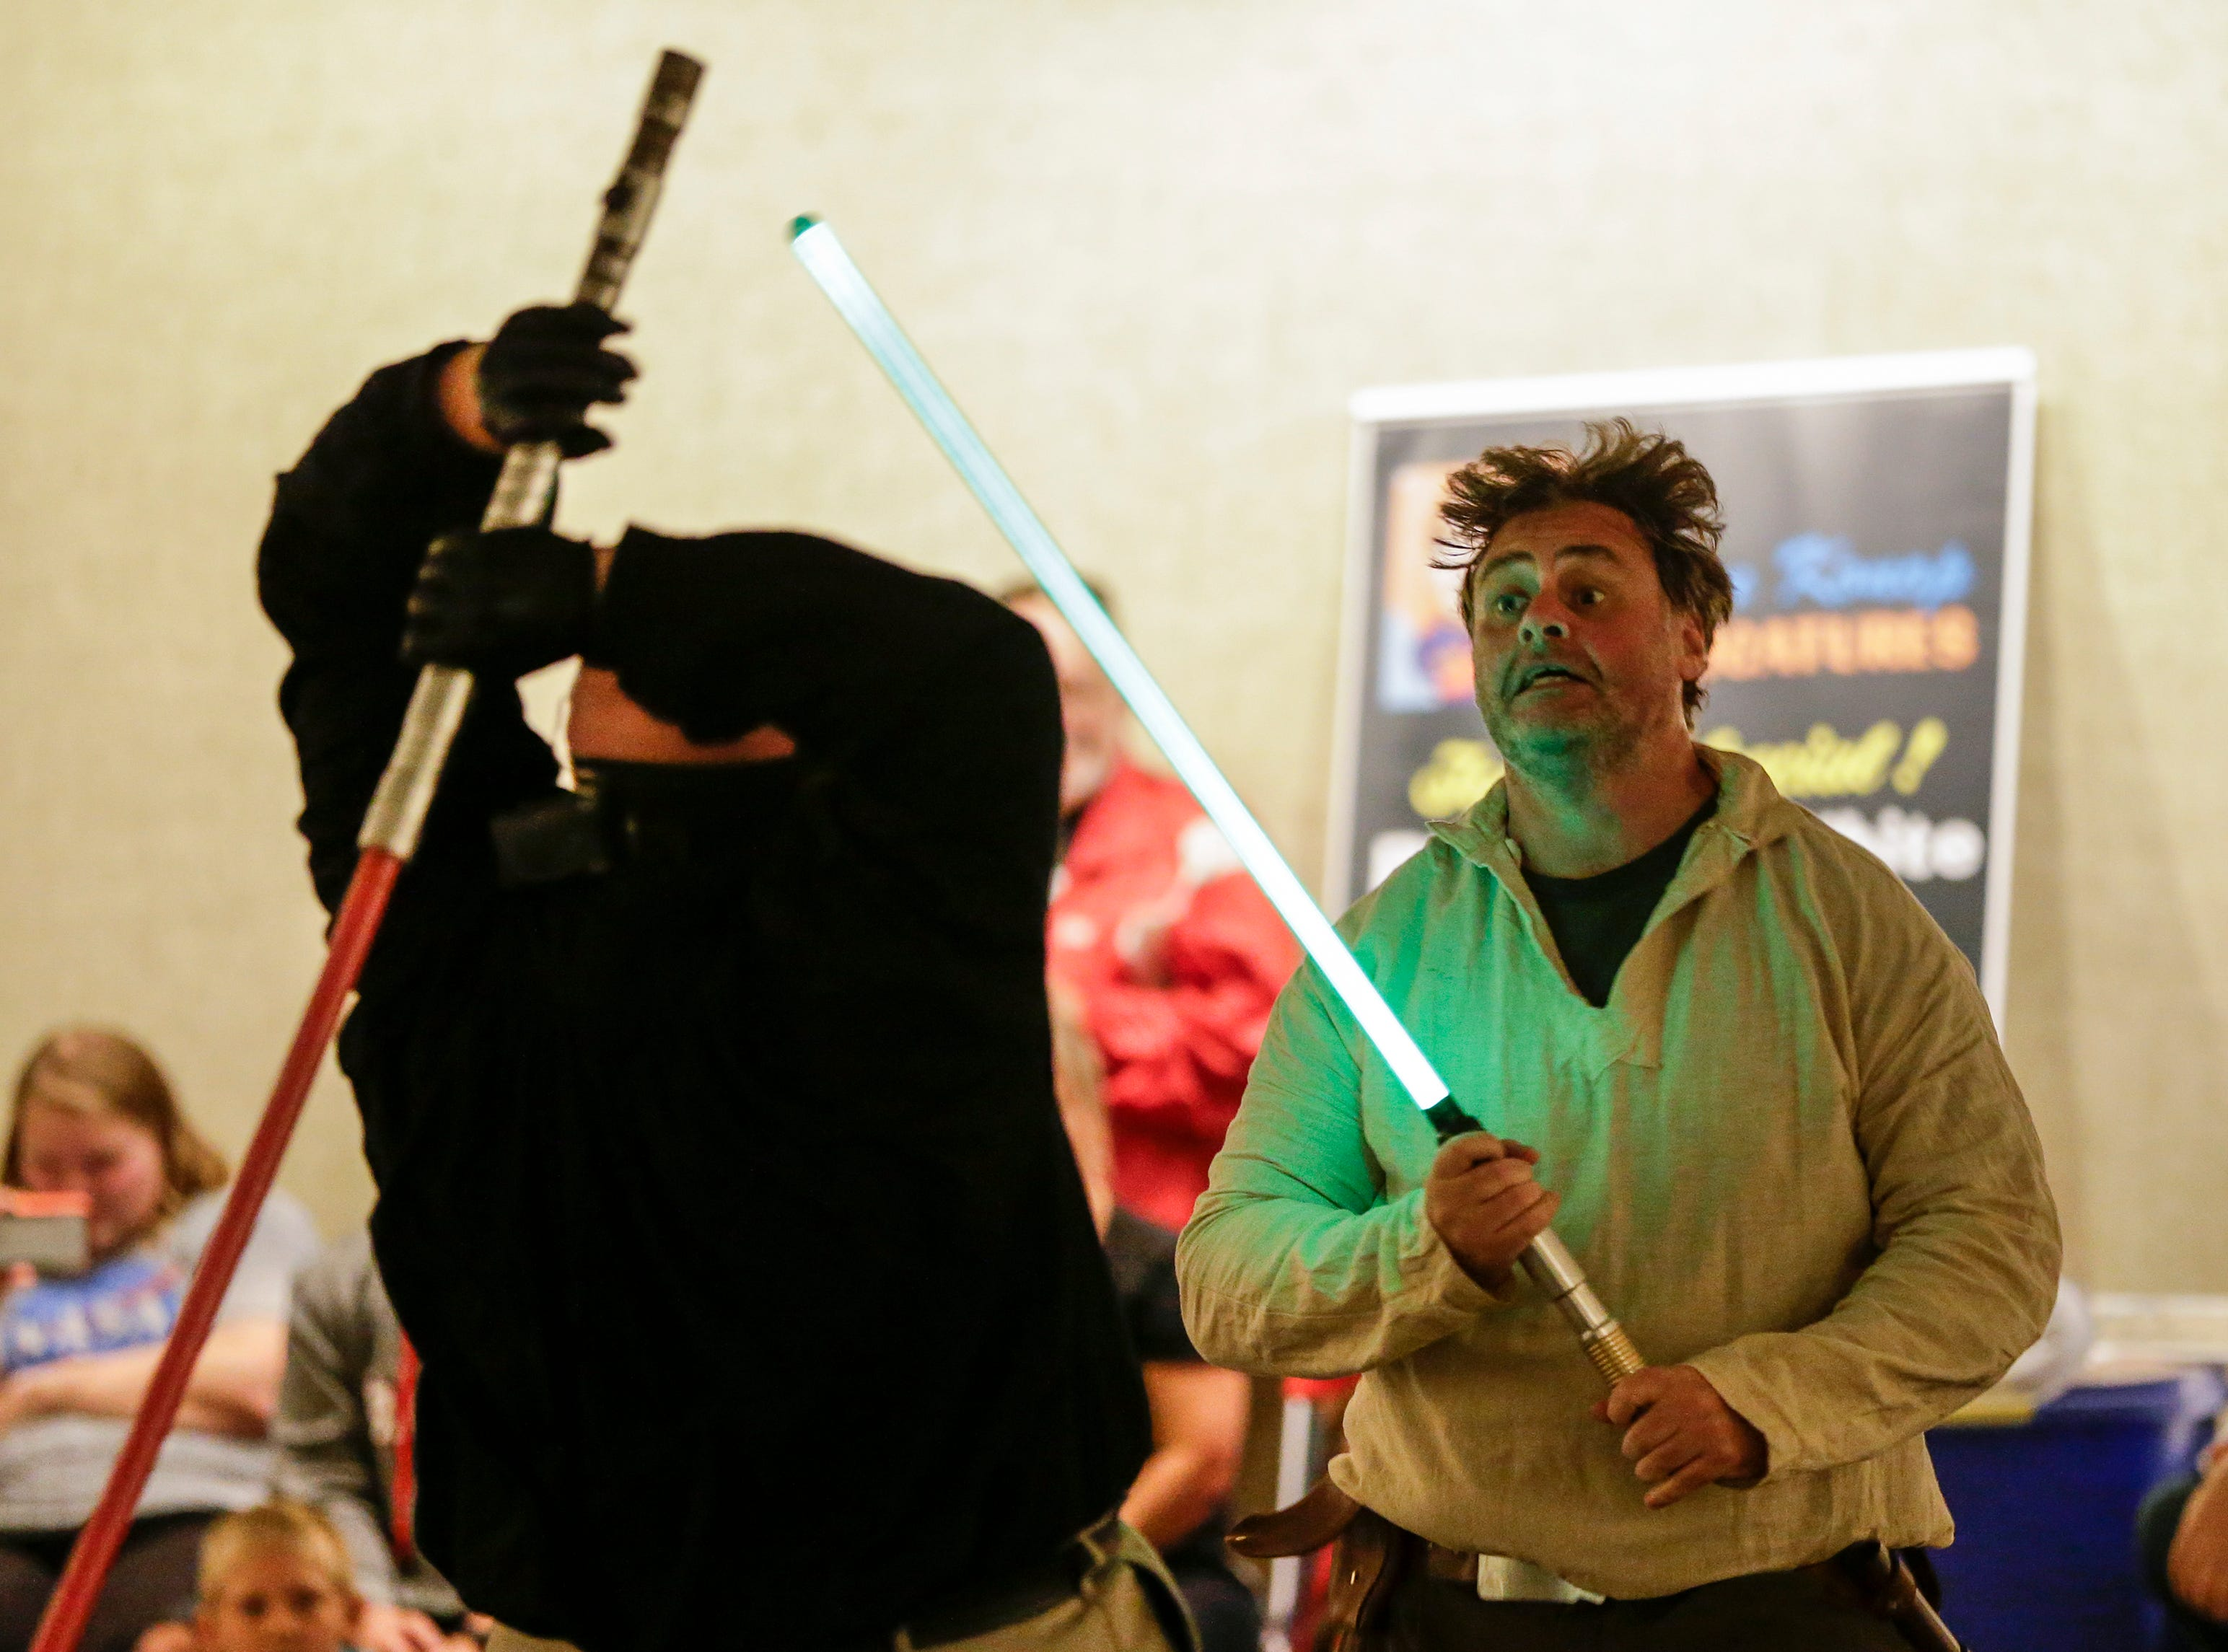 John Hartley of Sheboygan performs in a light saber duel during Sputnikfest at the Rahr-West Museum Saturday, September 8, 2018, in Manitowoc, Wis. Josh Clark/USA TODAY NETWORK-Wisconsin